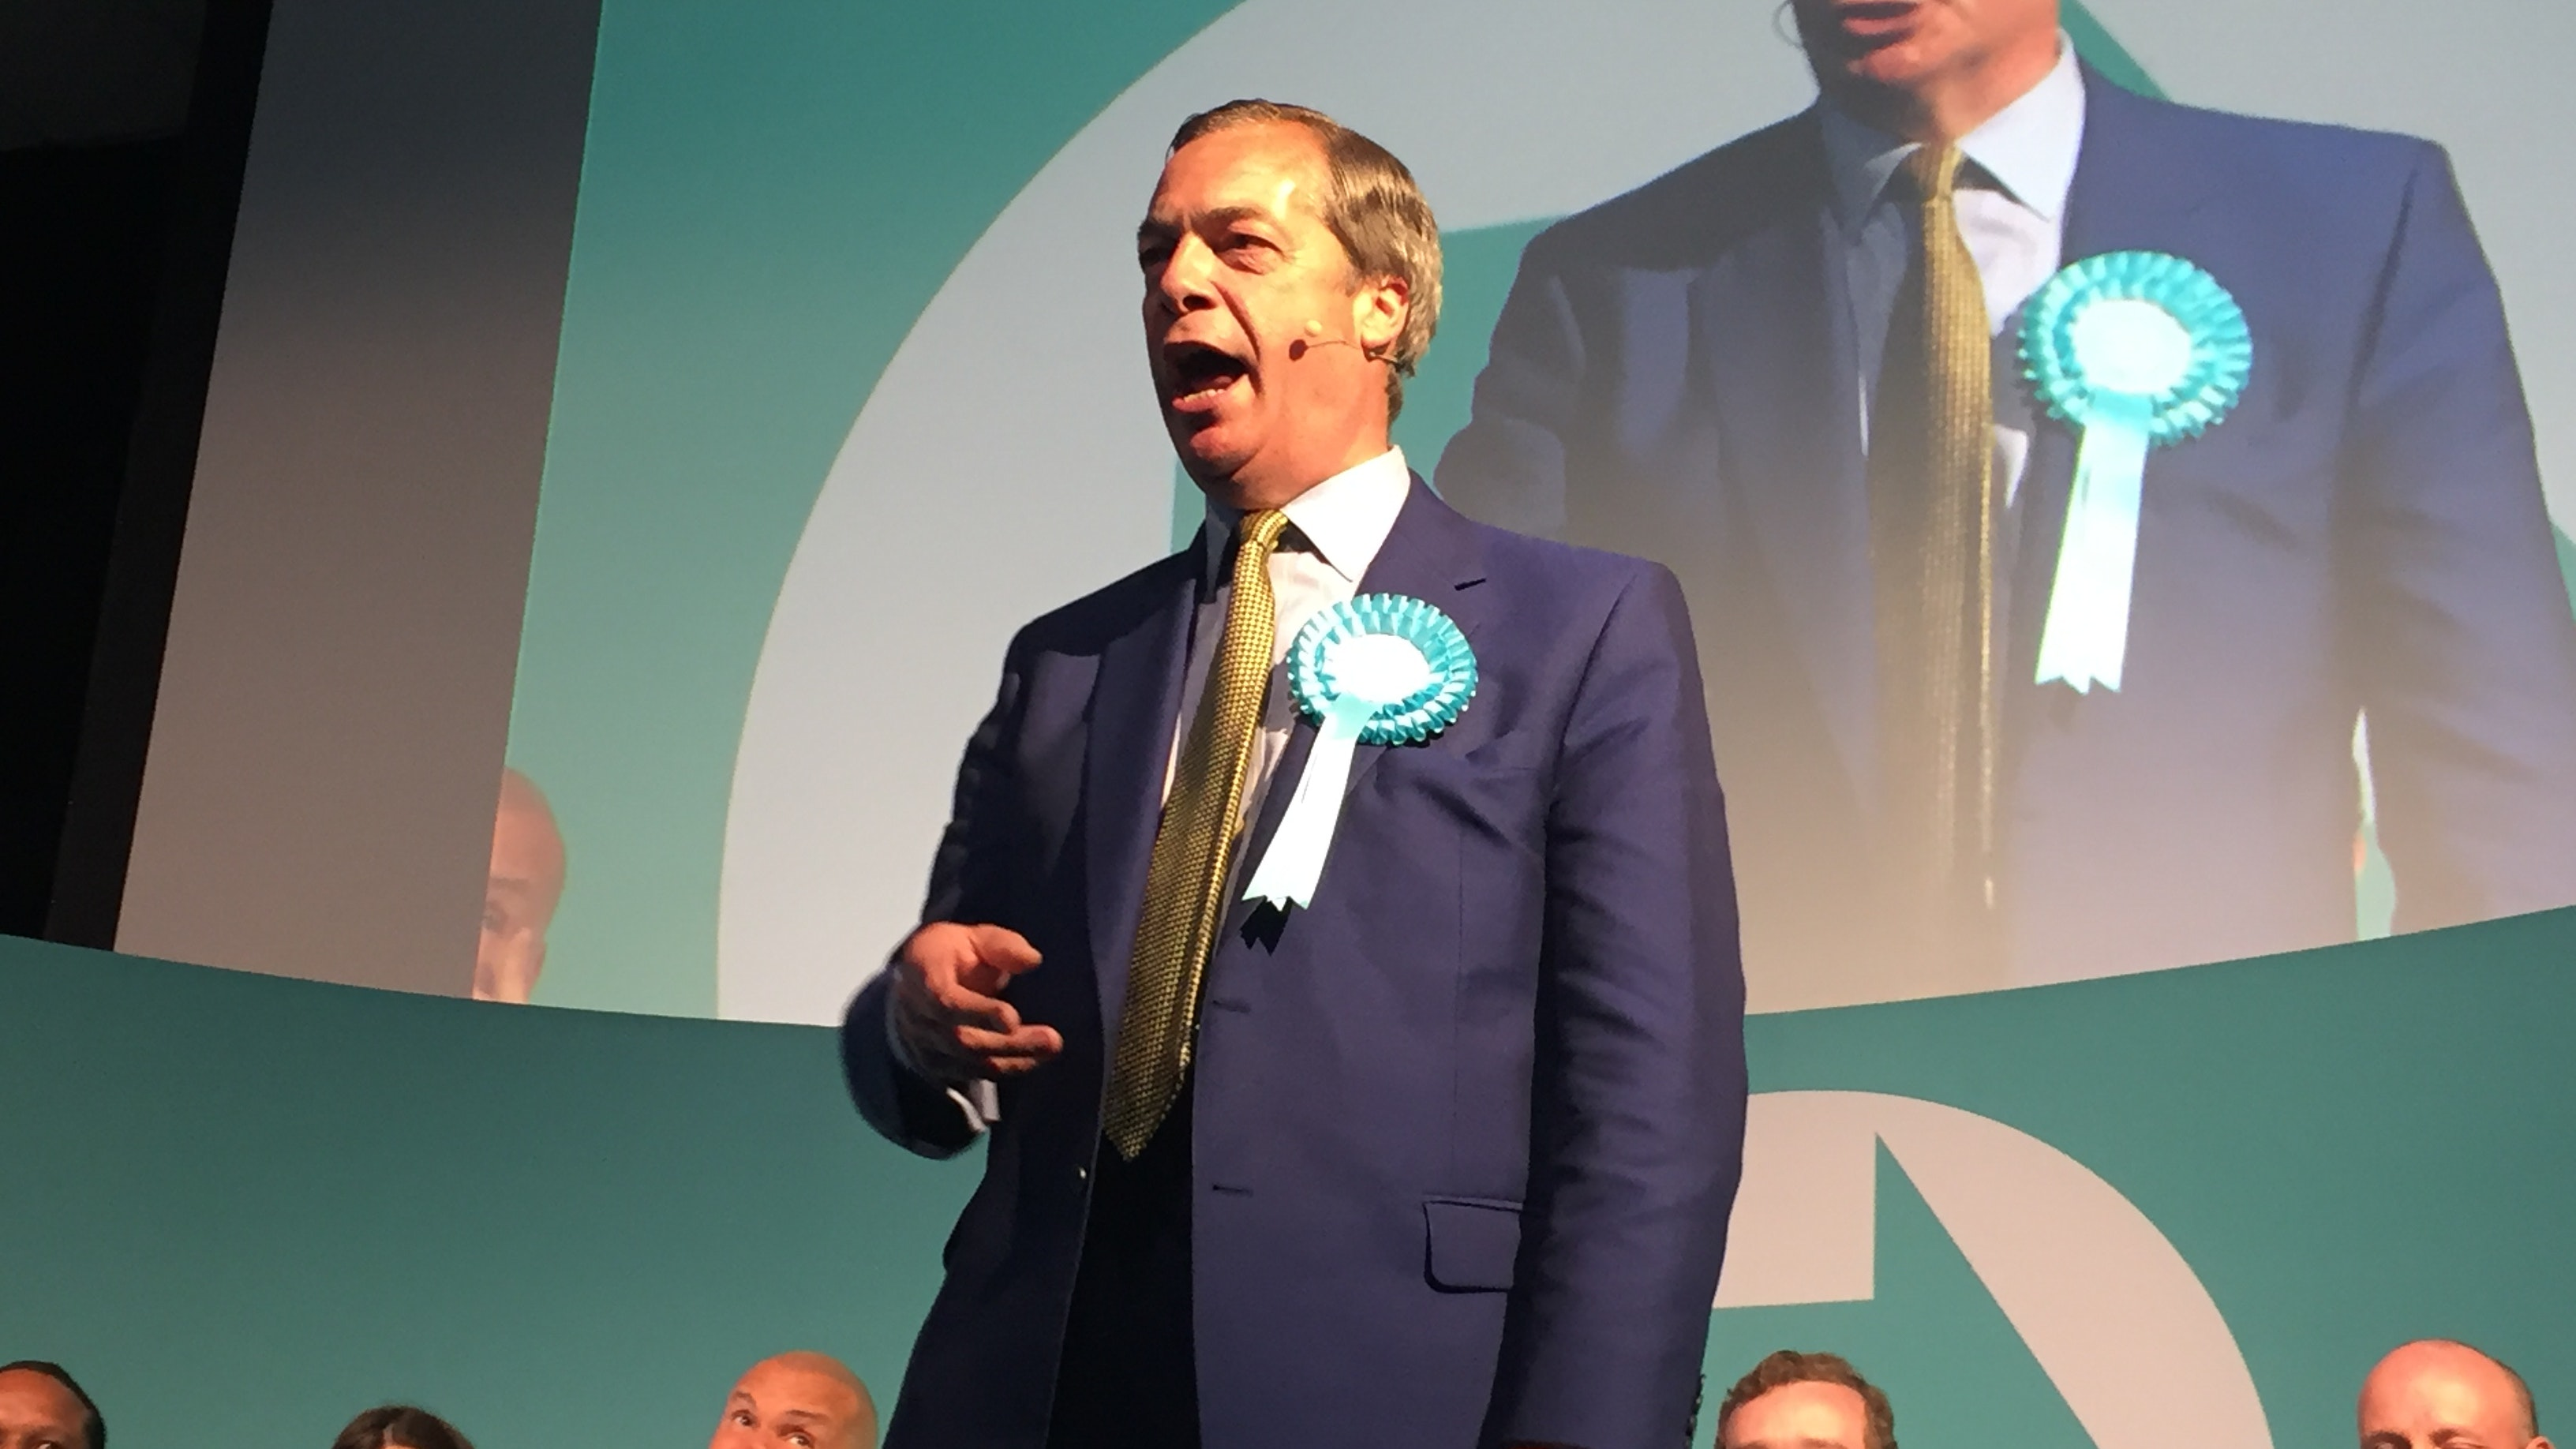 Brexit Party's Nigel Farage Aims for Pact with Tory PM